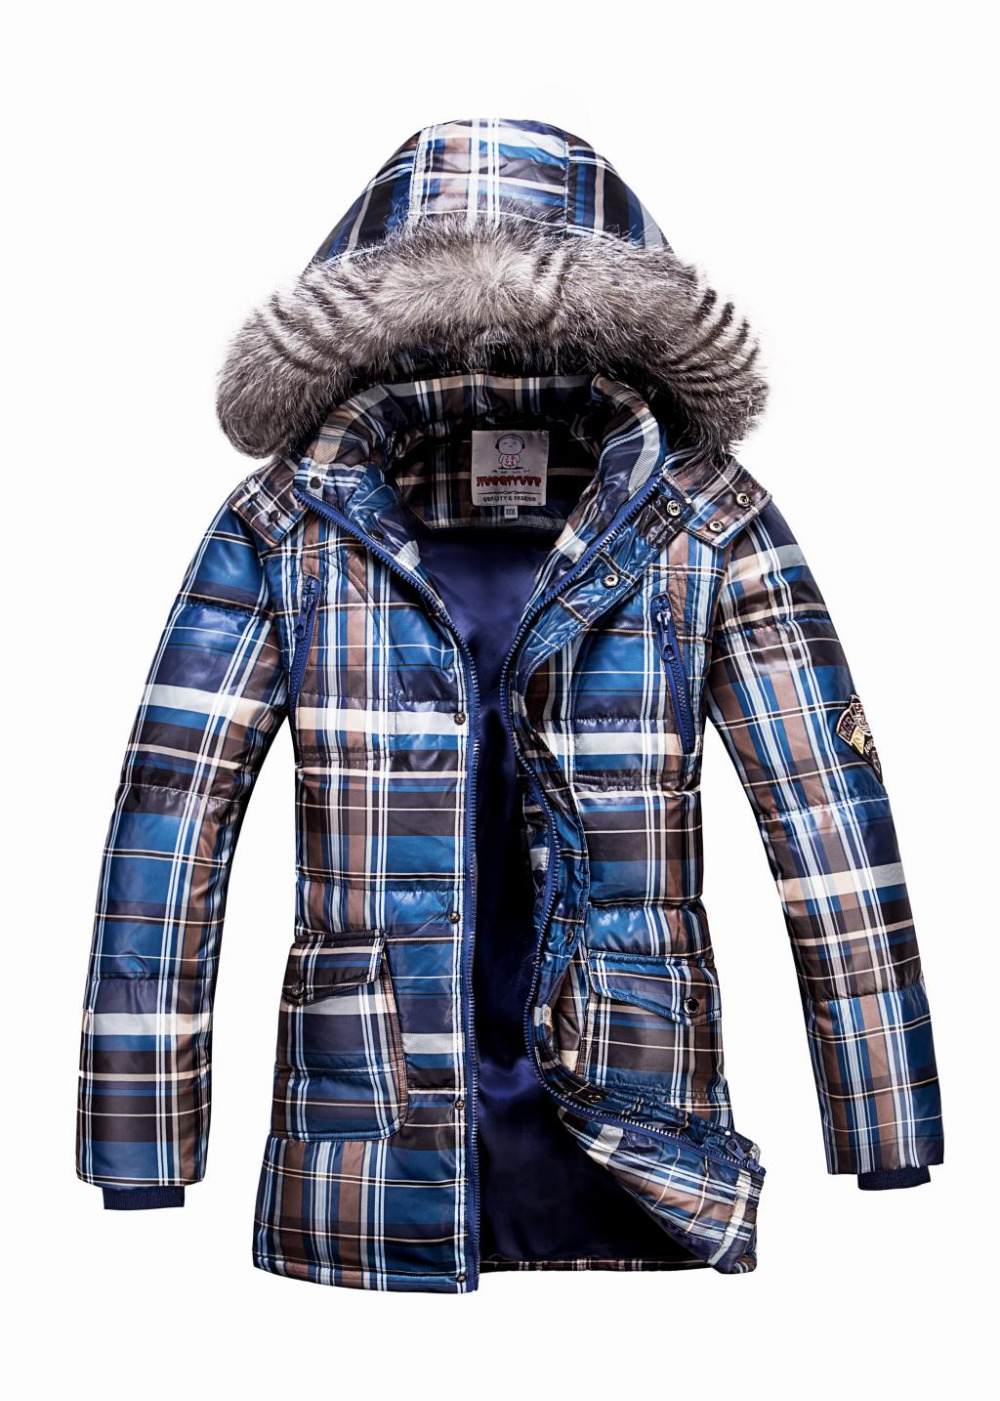 See our guide to the best winter jackets of , with reviews of the warmest men's and women's jackets from The North Face, Patagonia, Marmot, REI, and more. Switchback Travel. Search. Main navigation - Desktop (make sure to remove the jacket from the dry bag for long-term storage).